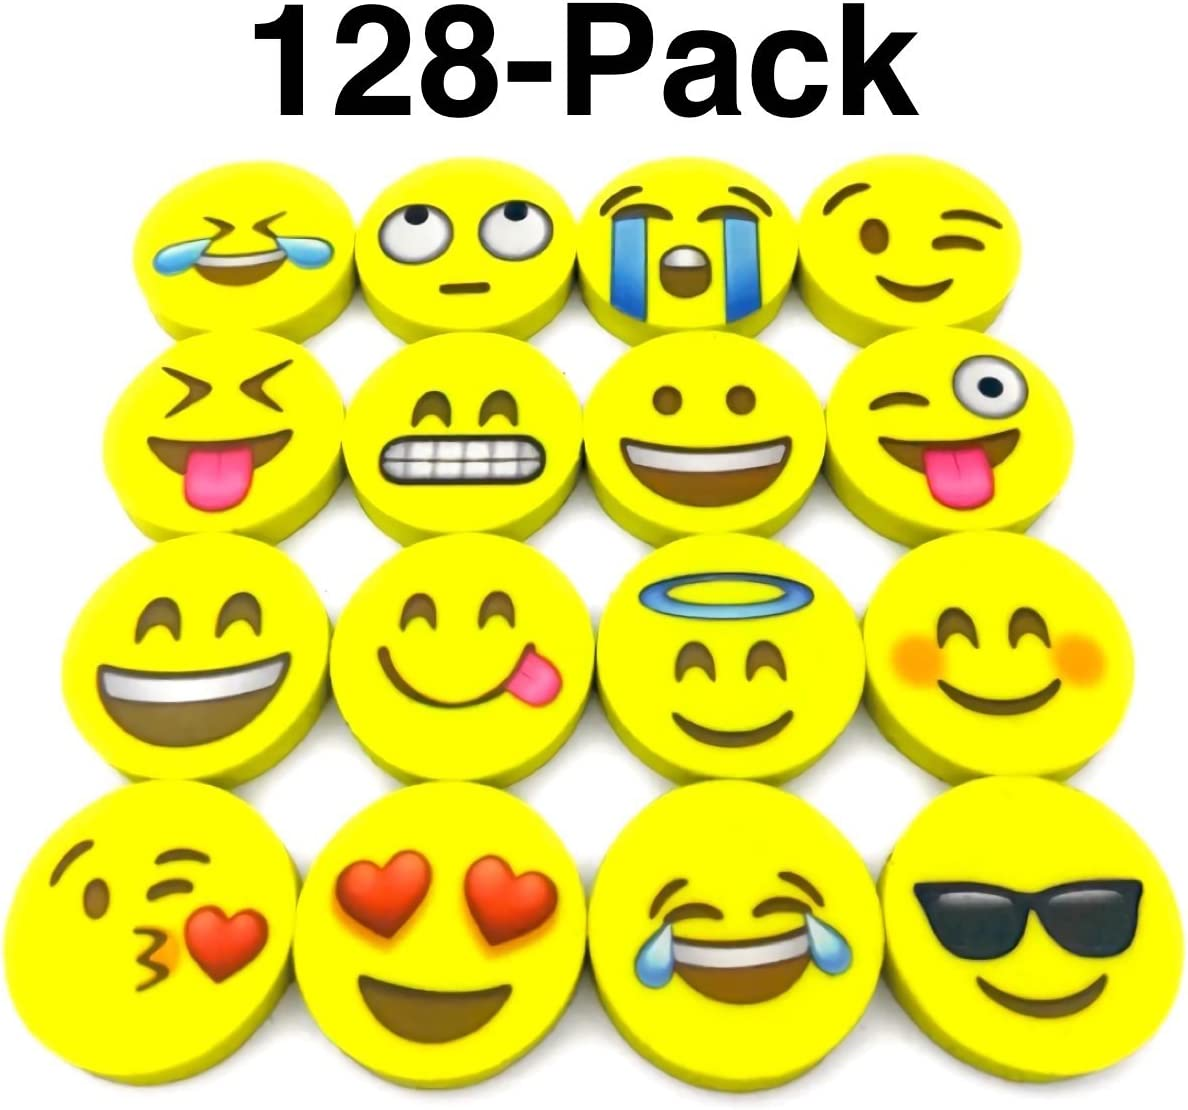 128-pack of yellow erasers with emoji faces on them.